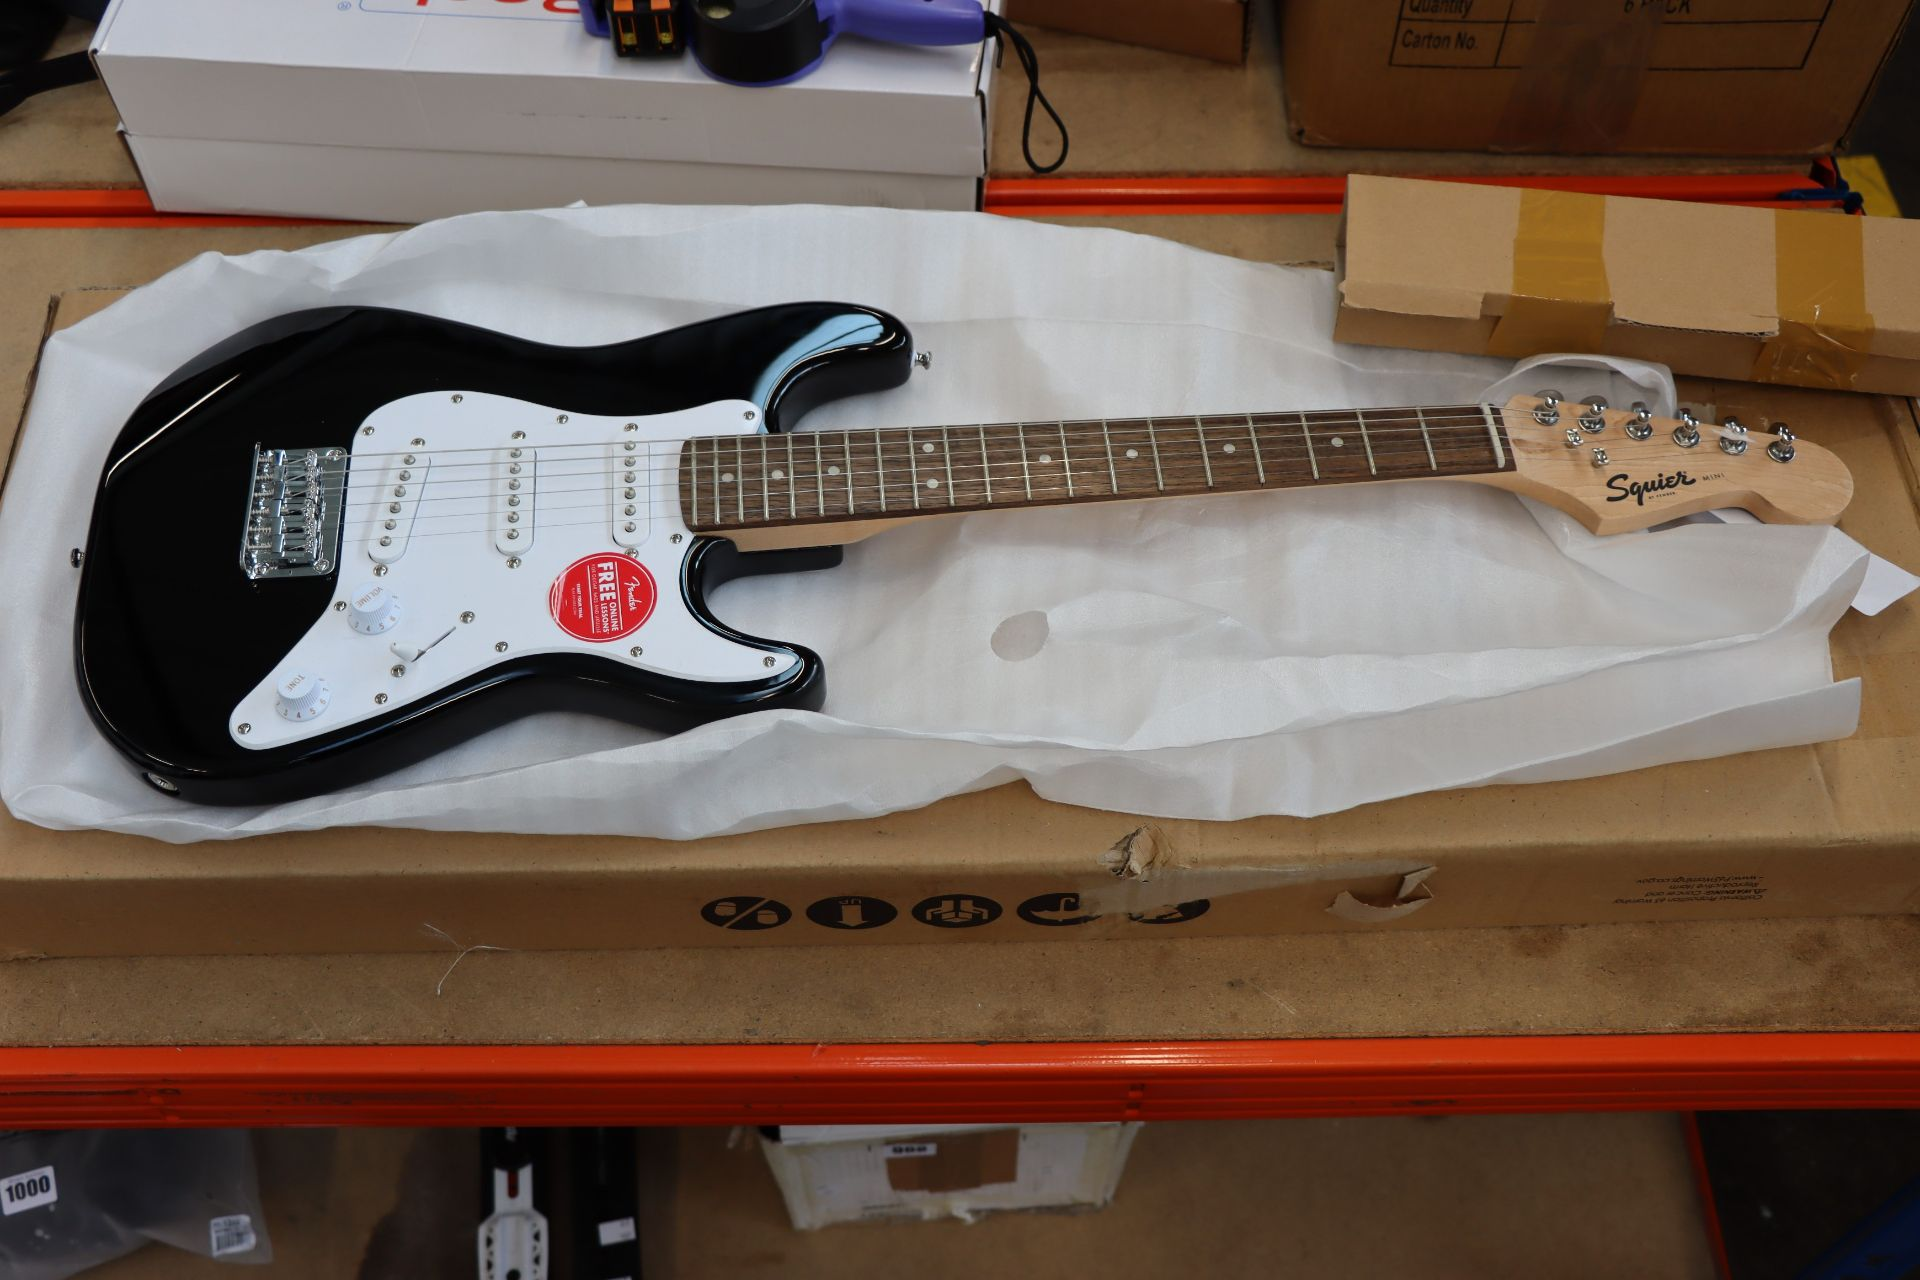 Lot 996 - One boxed as new Fender Squier Mini Strat in black and white.